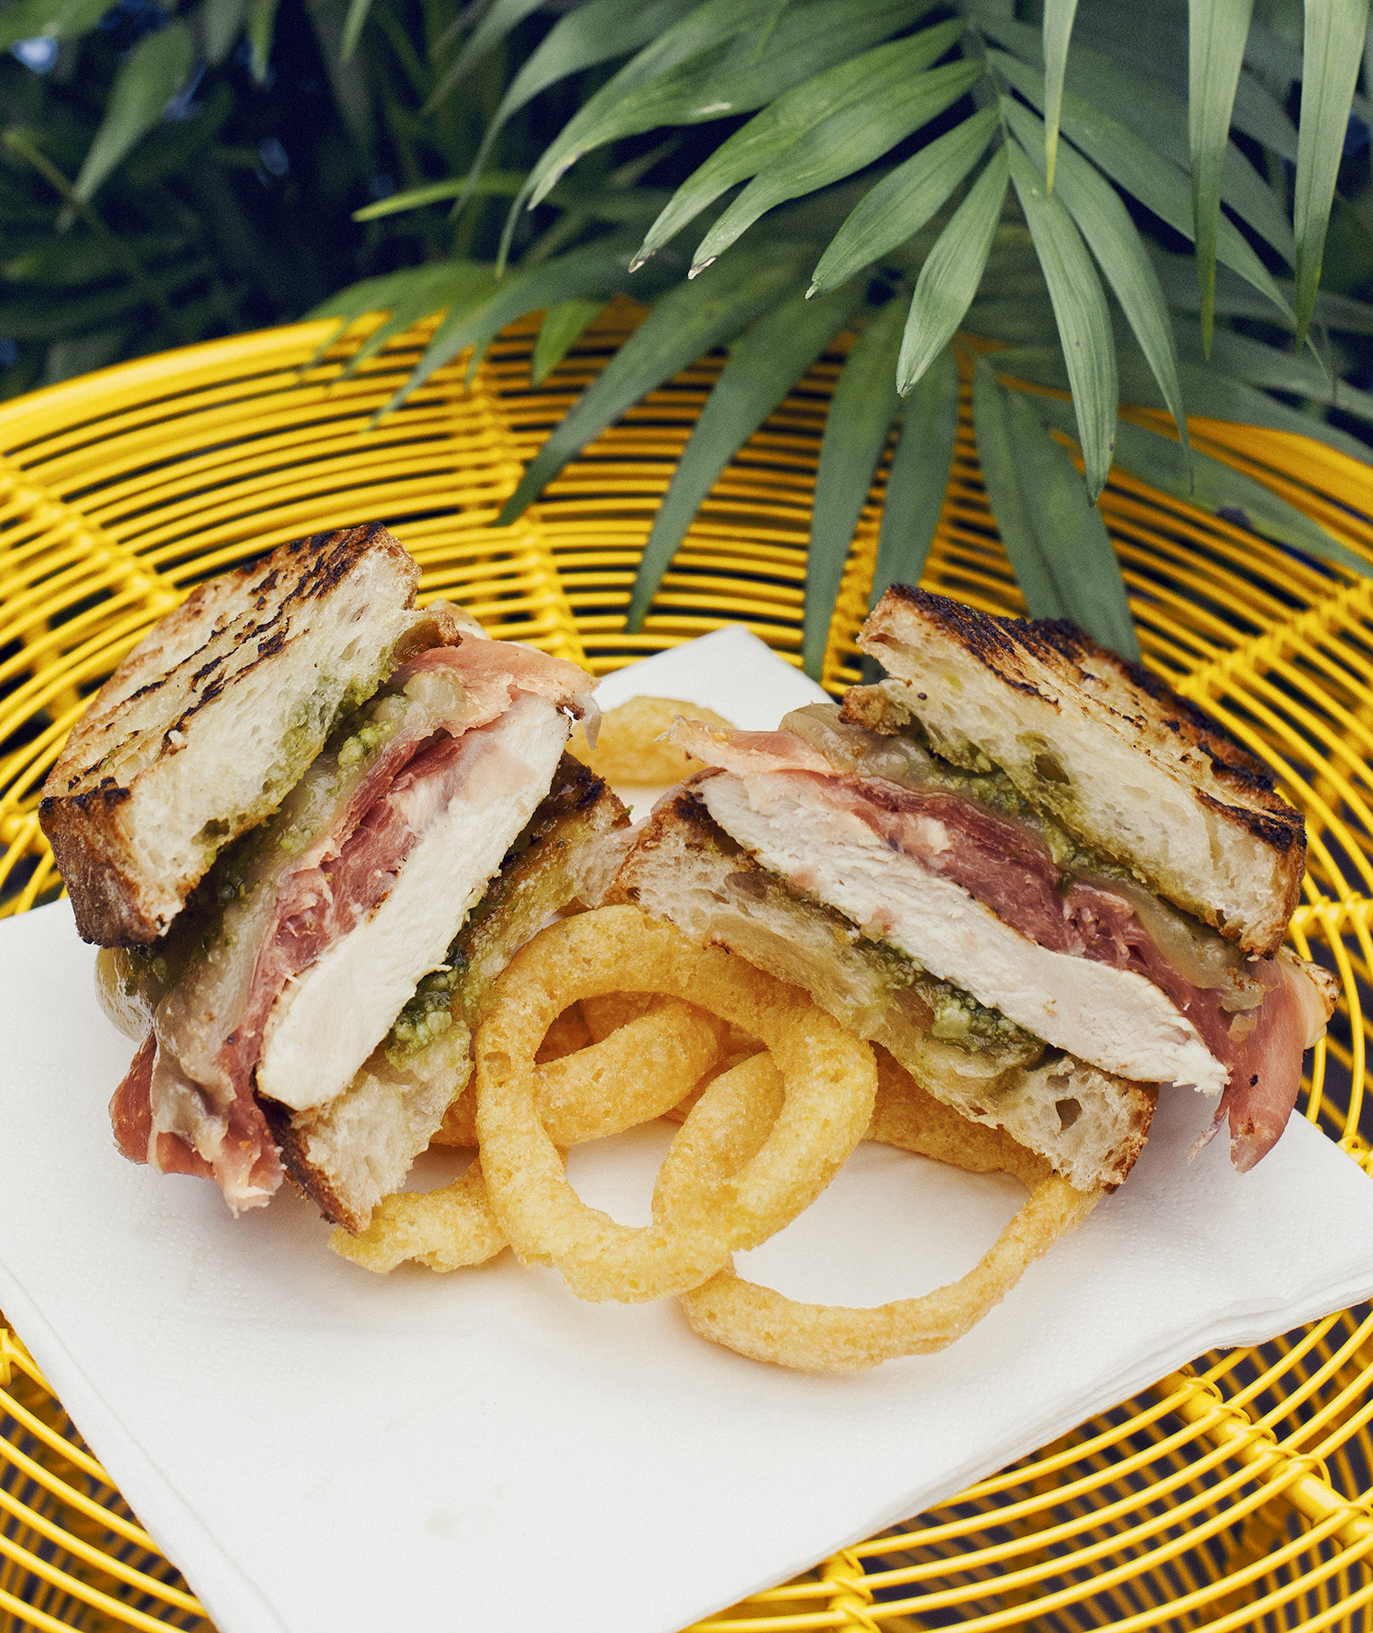 Grilled Chicken and Prosciutto on Ciabatta With Pesto and Fontina